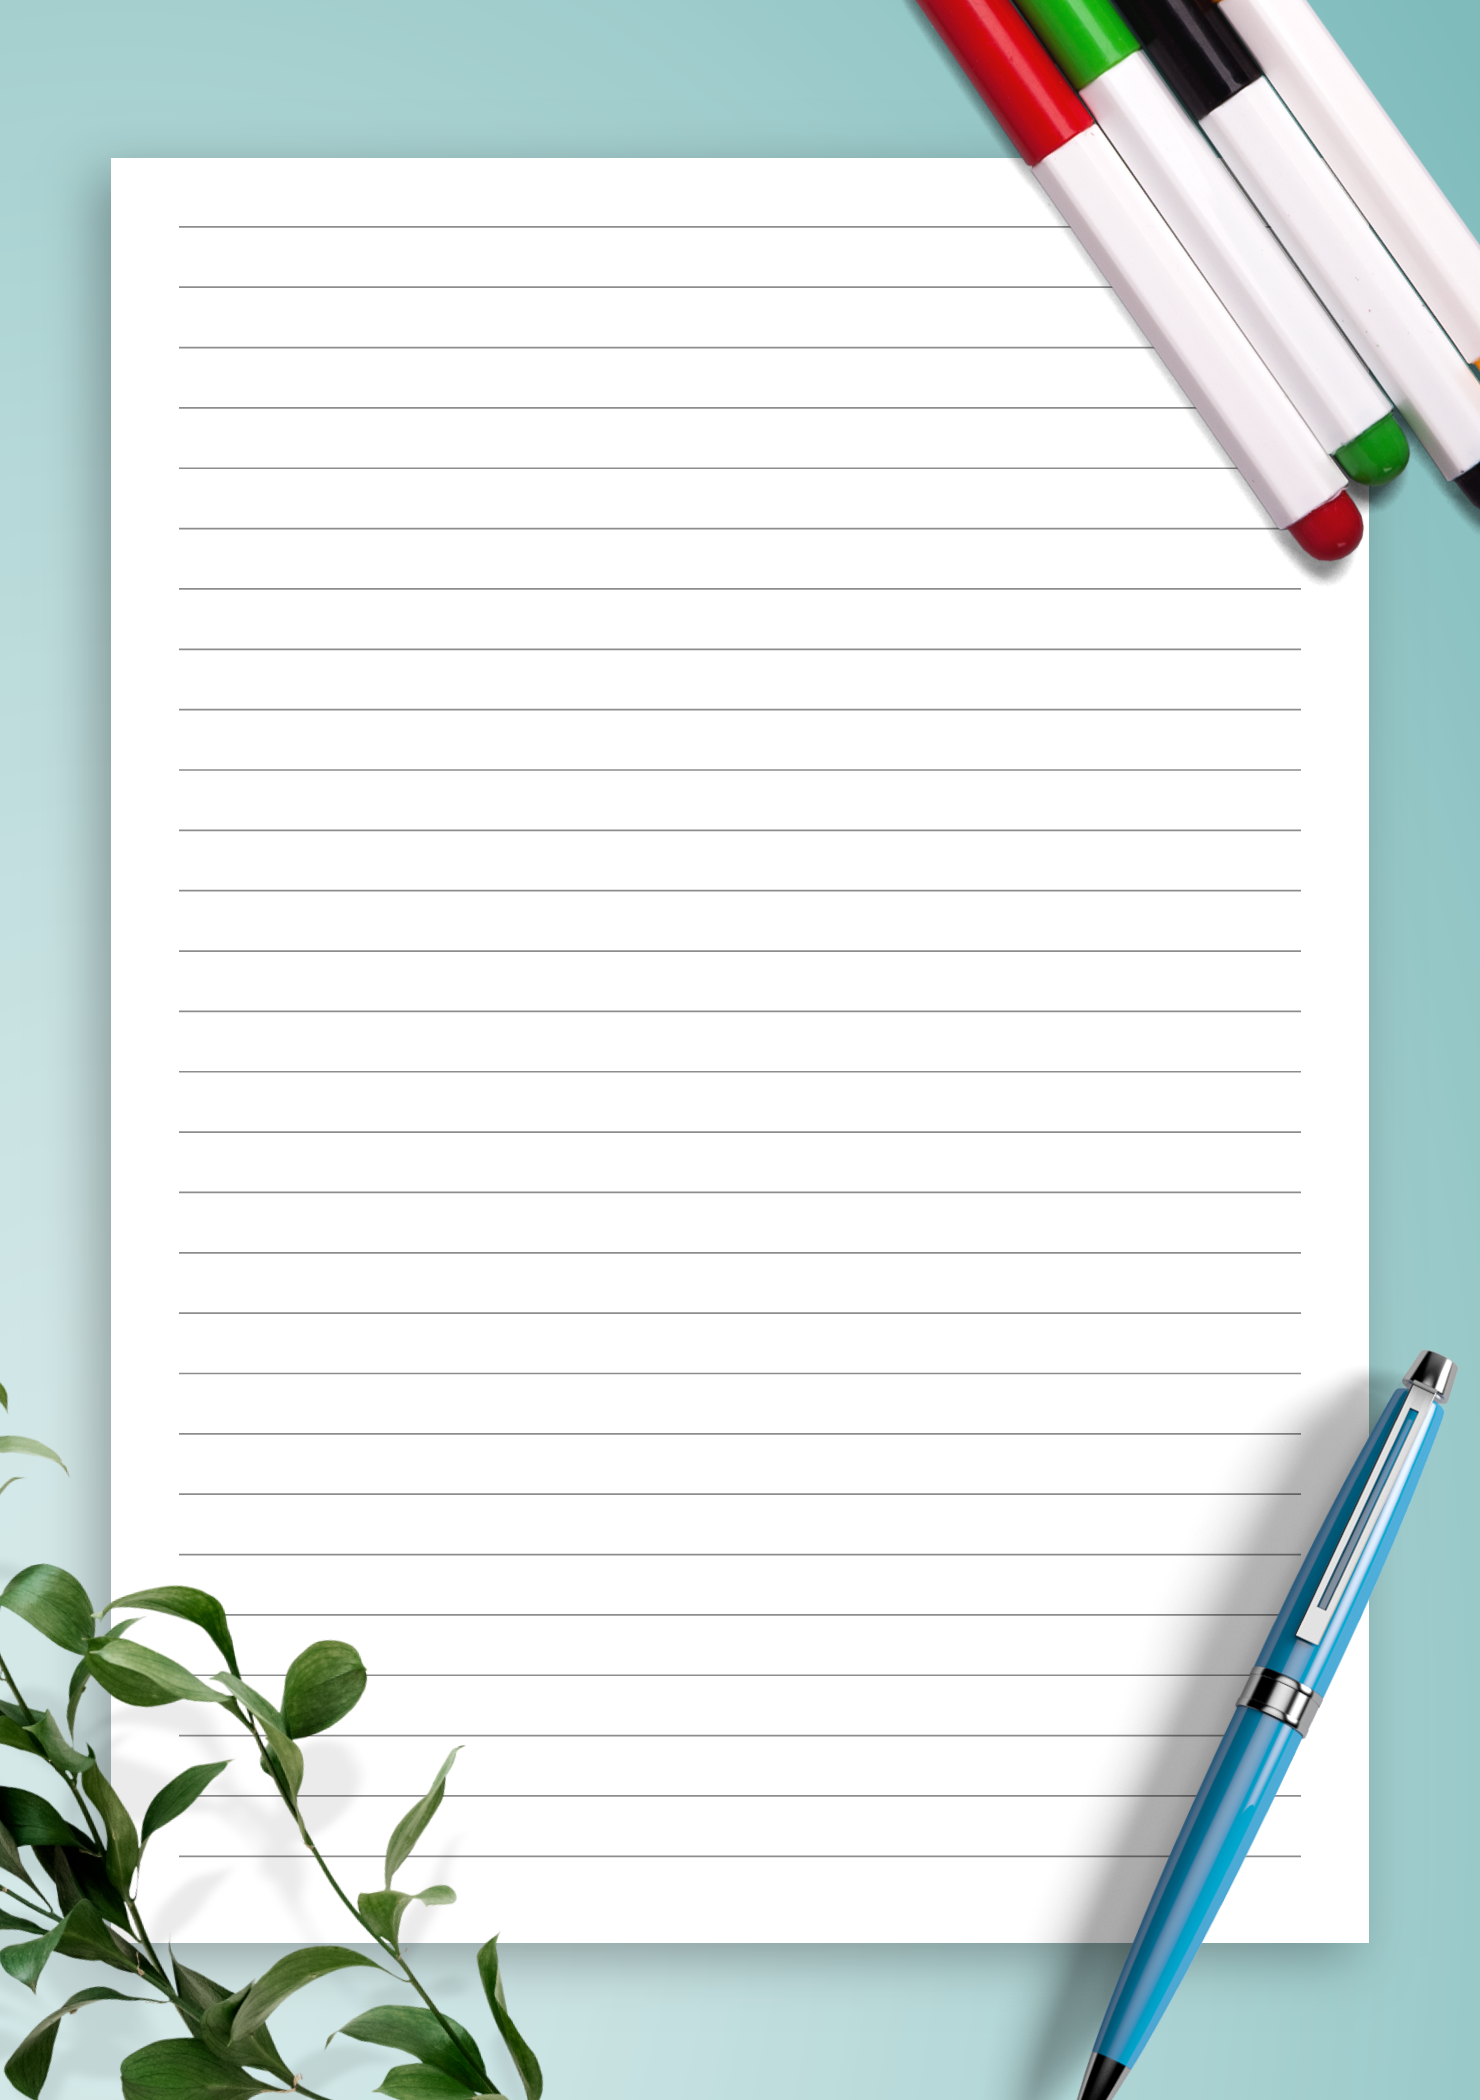 Printable Lined Paper Template With 7 1 Mm Line Height